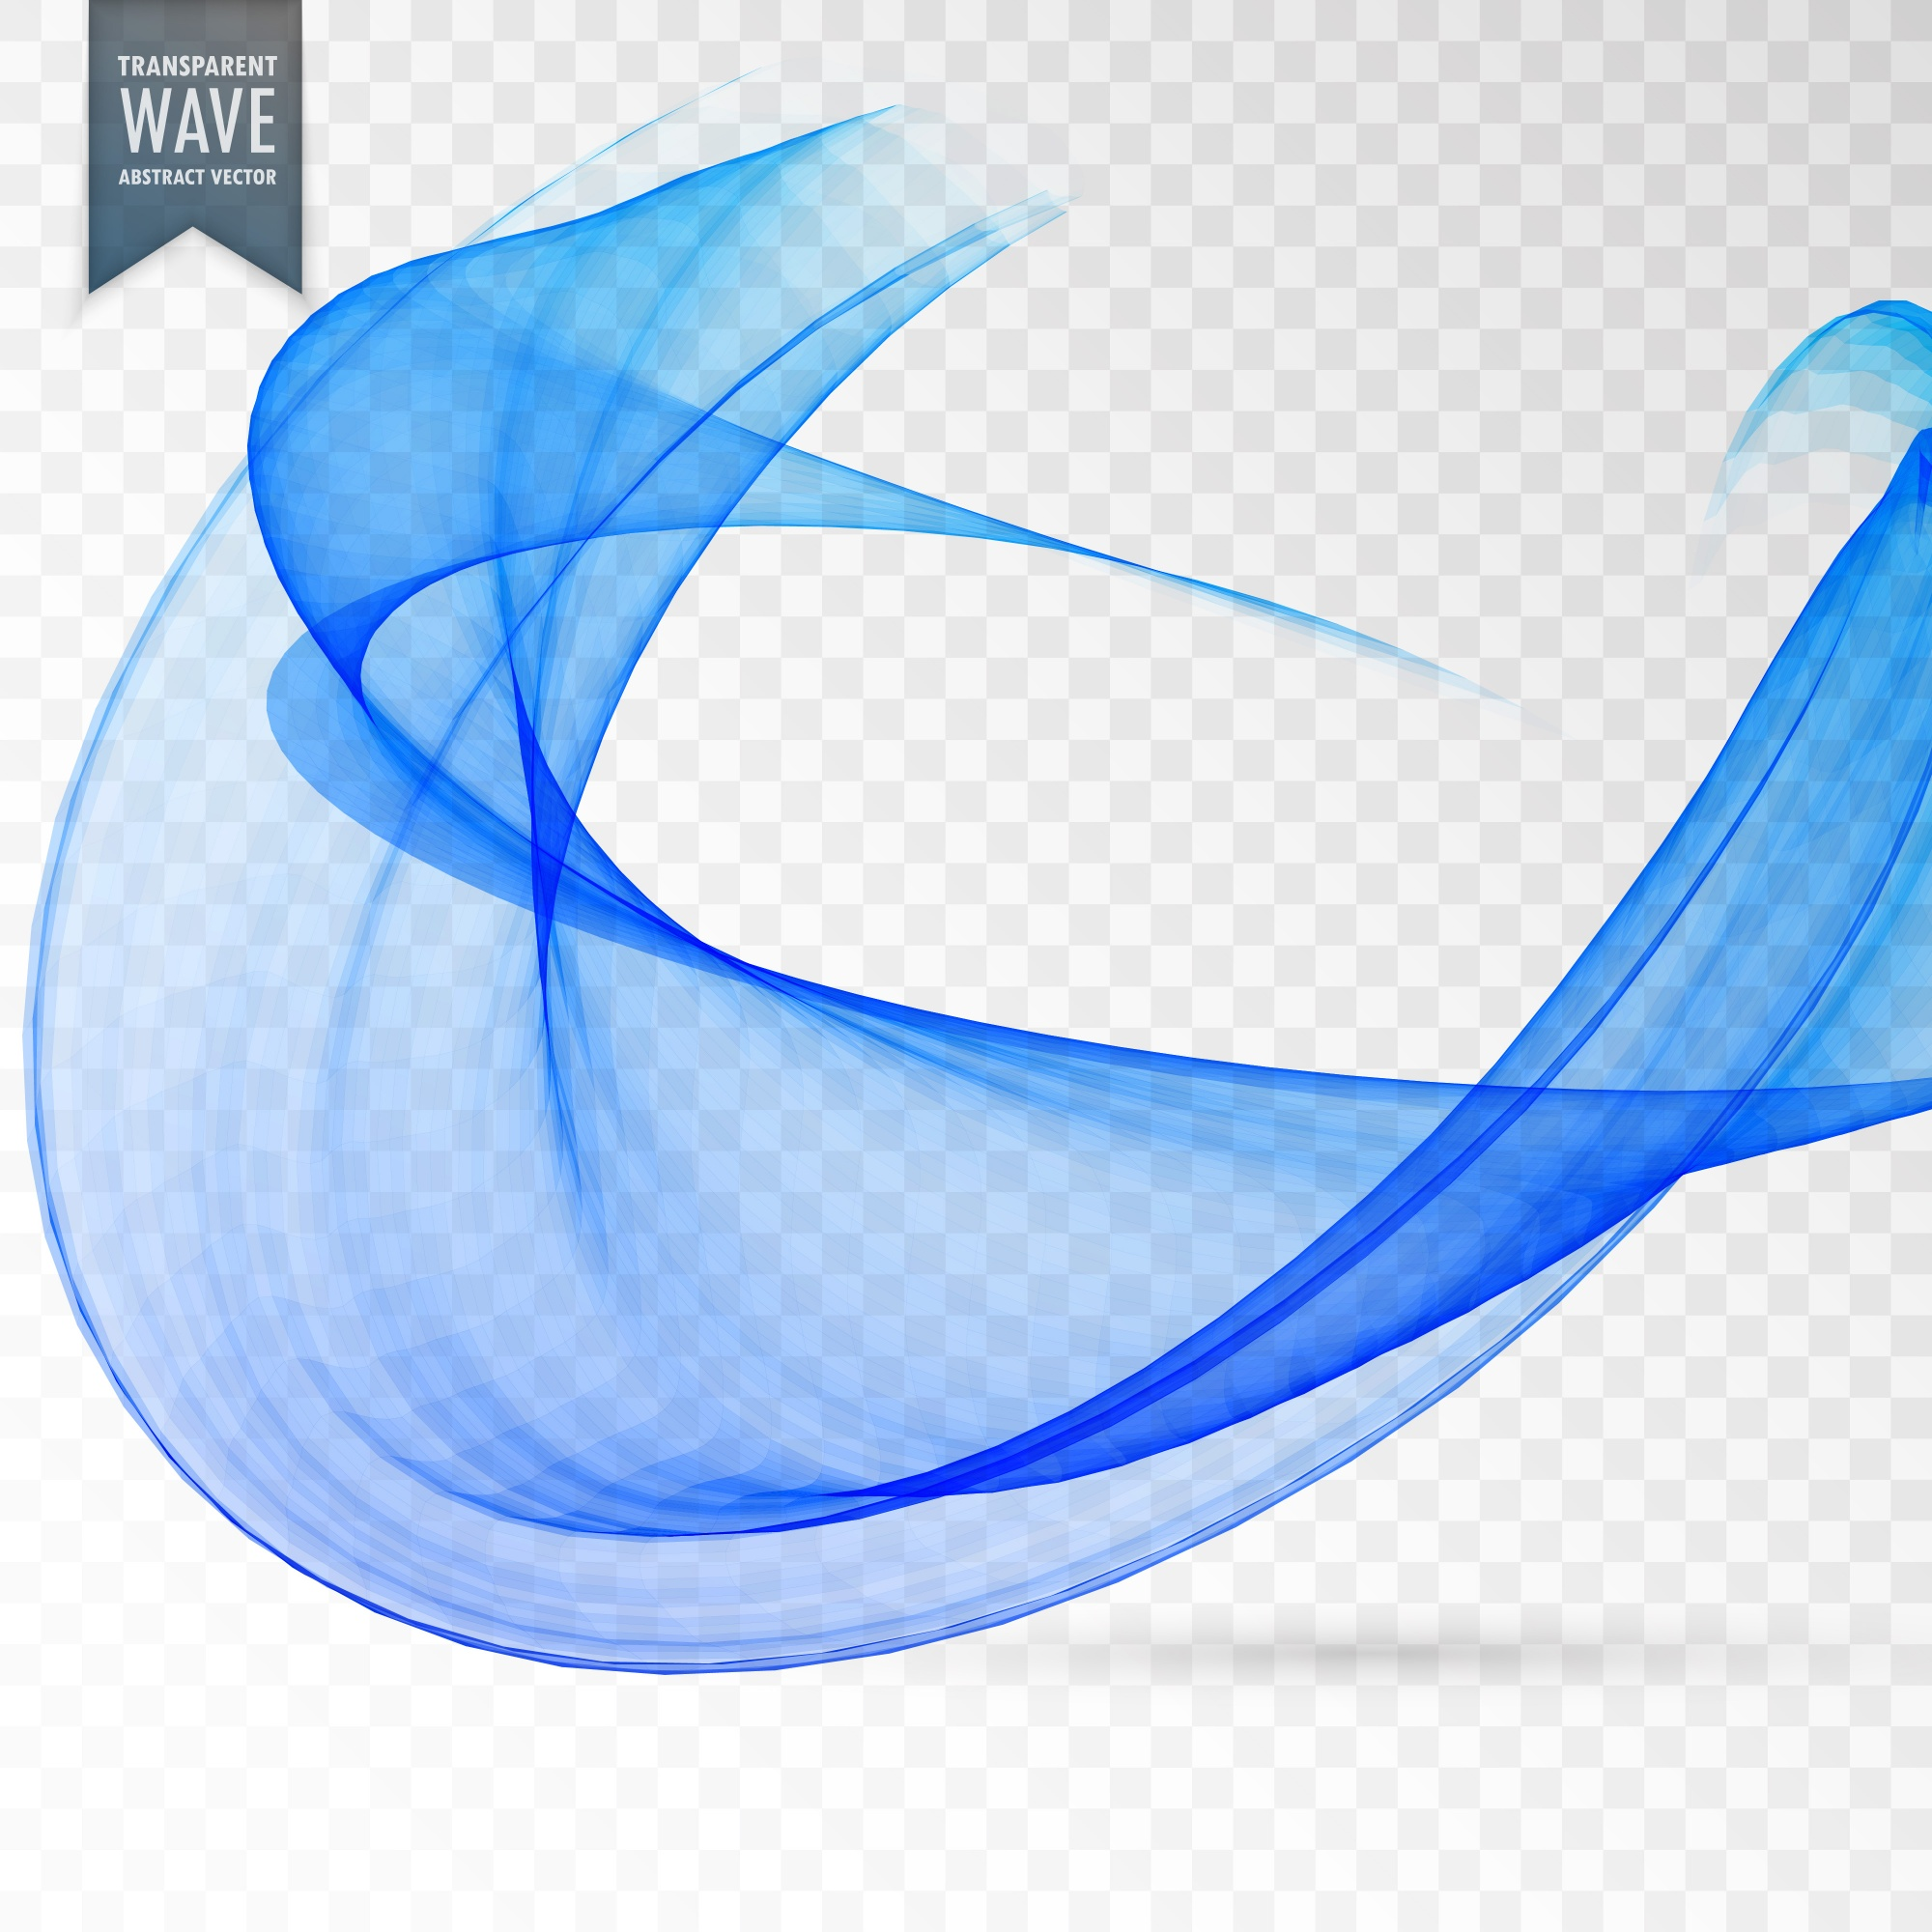 Abstract blue wave on transparent background